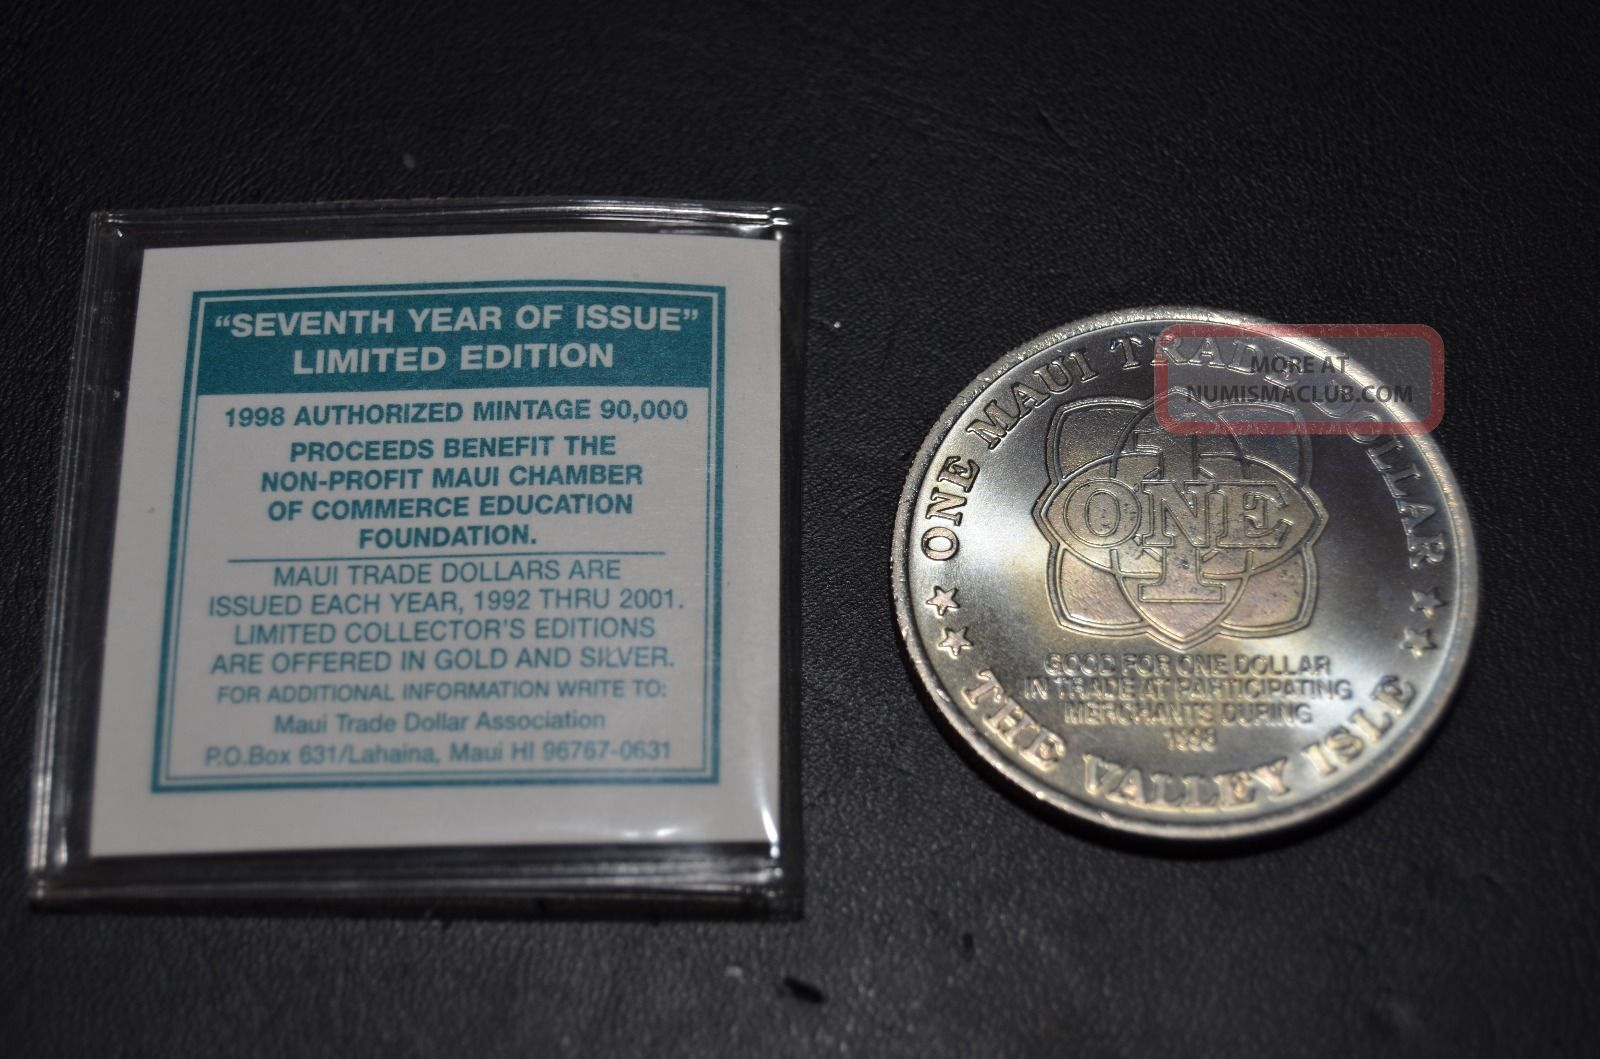 1998 Maui Trade Dollar With Certificate Of Authenticity Exonumia photo